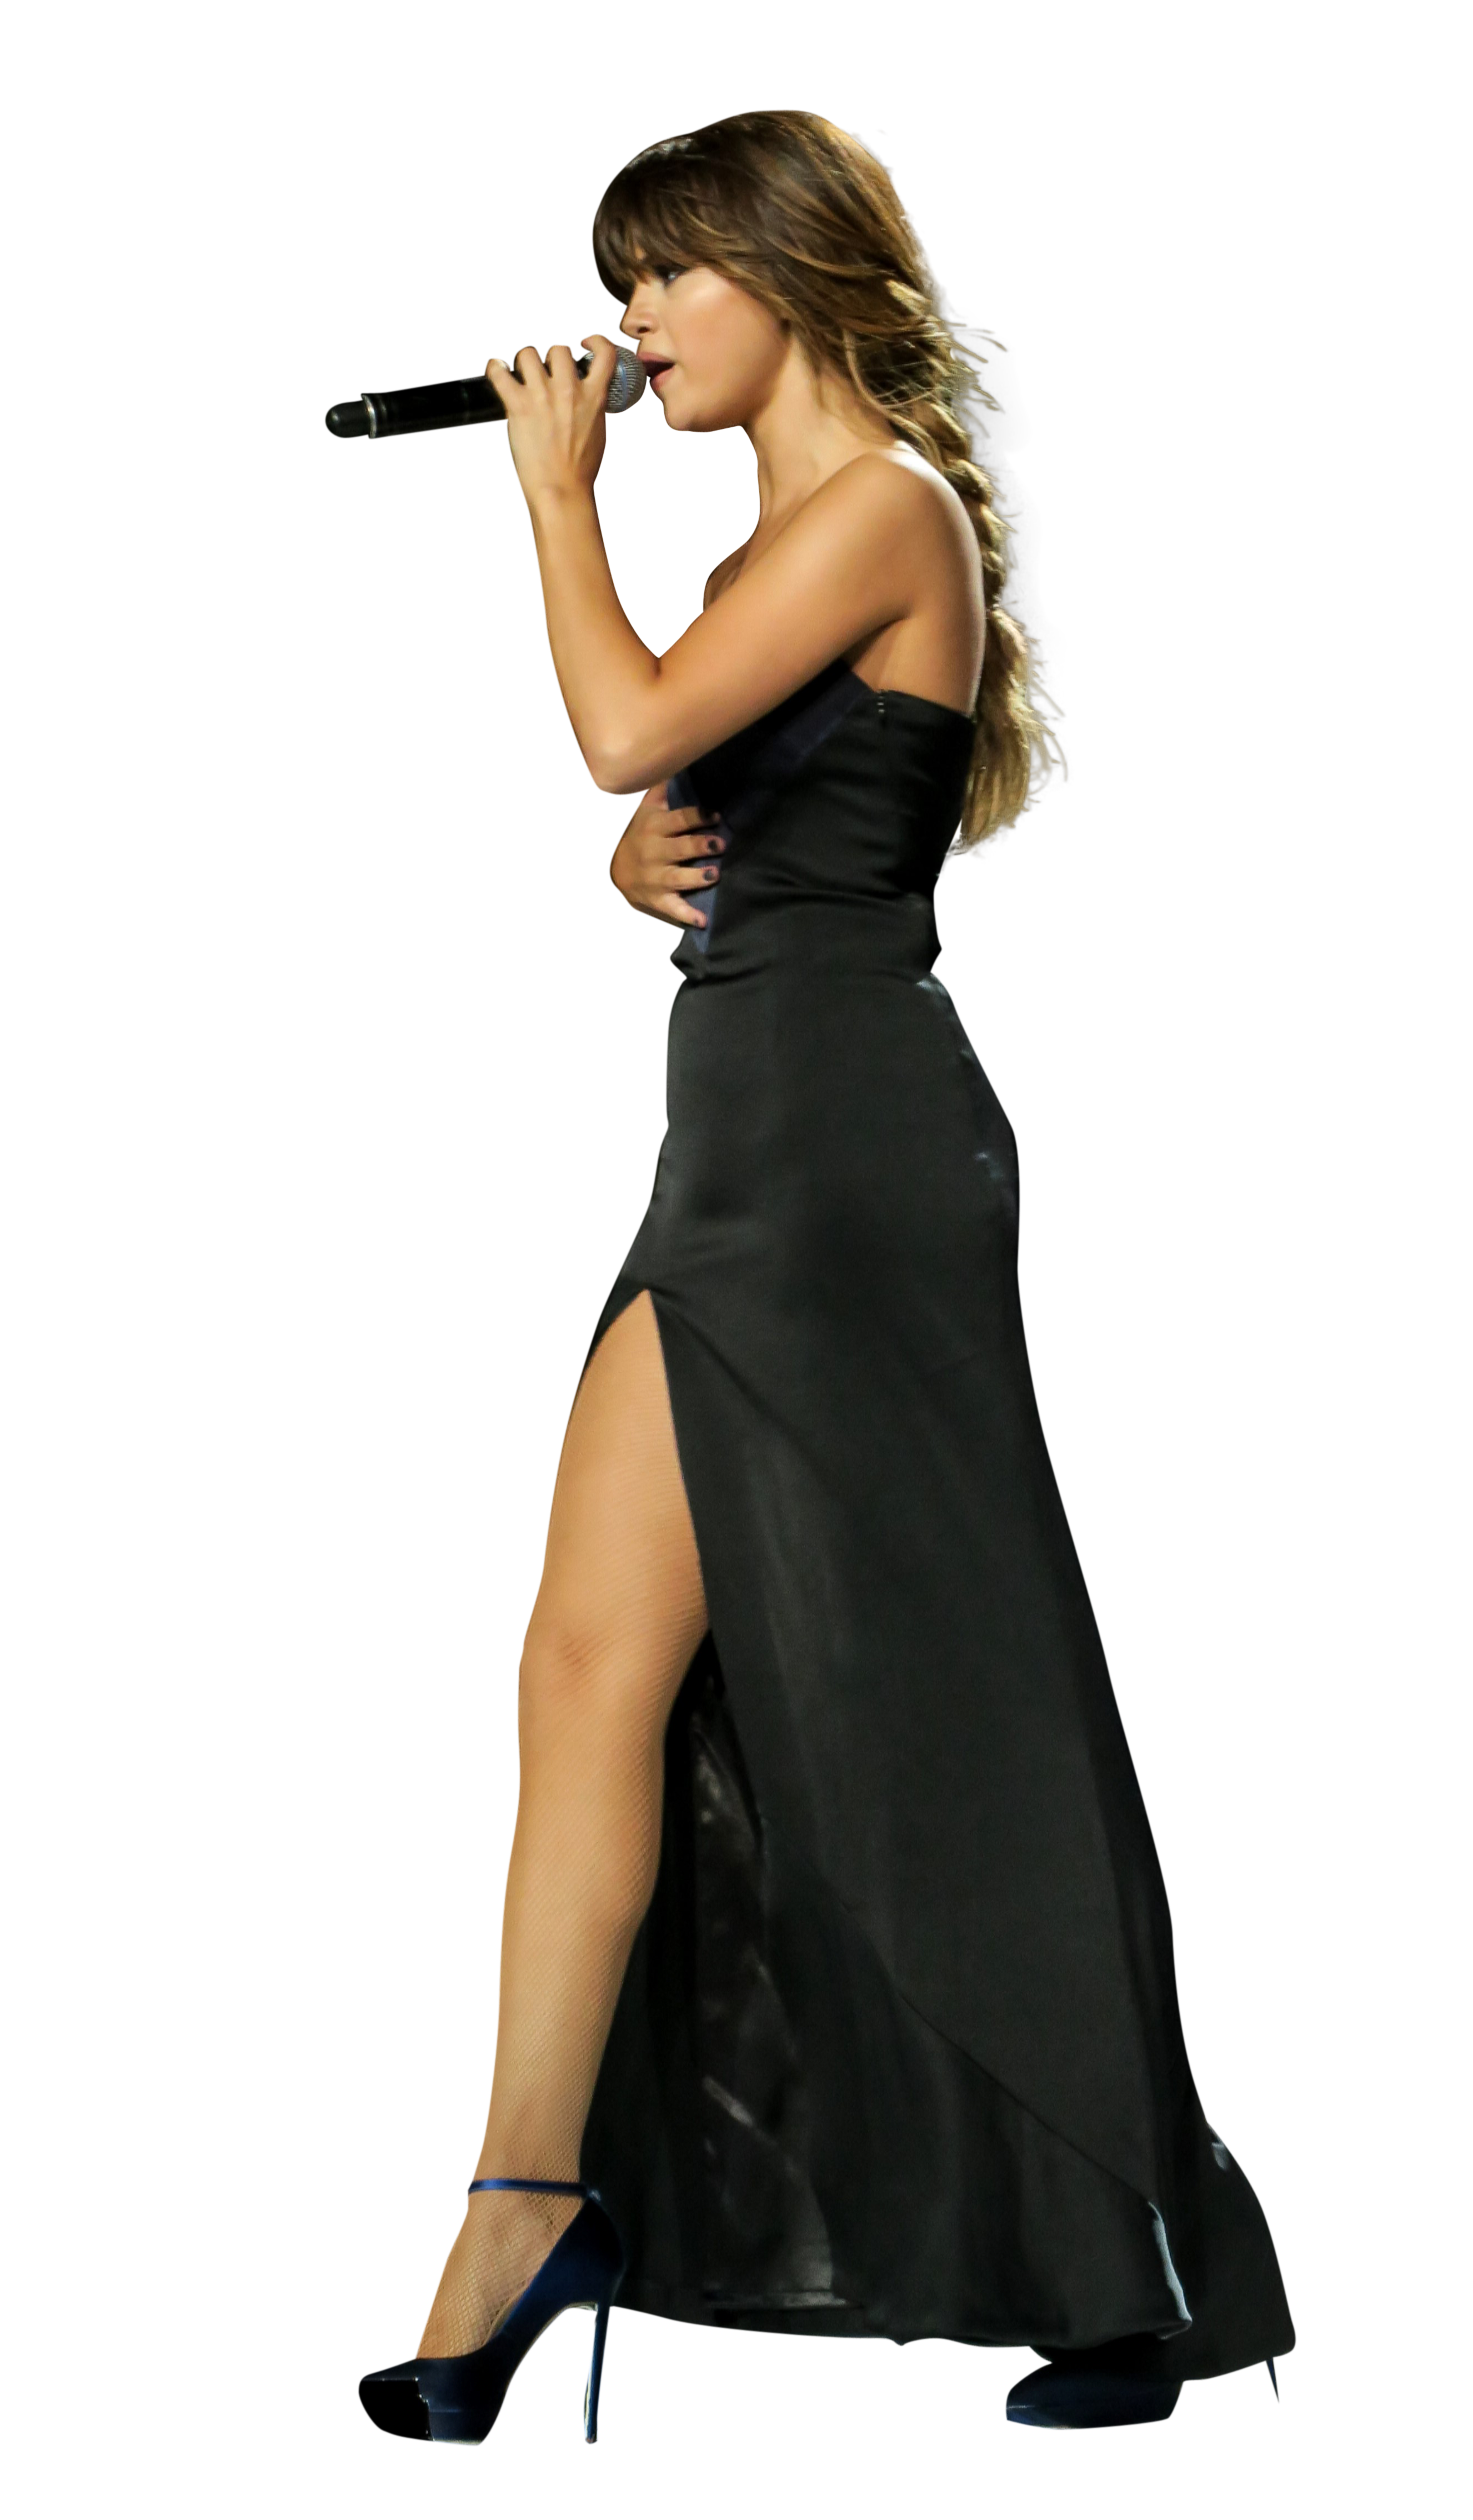 Selena Gomez Singing on Stage PNG Image